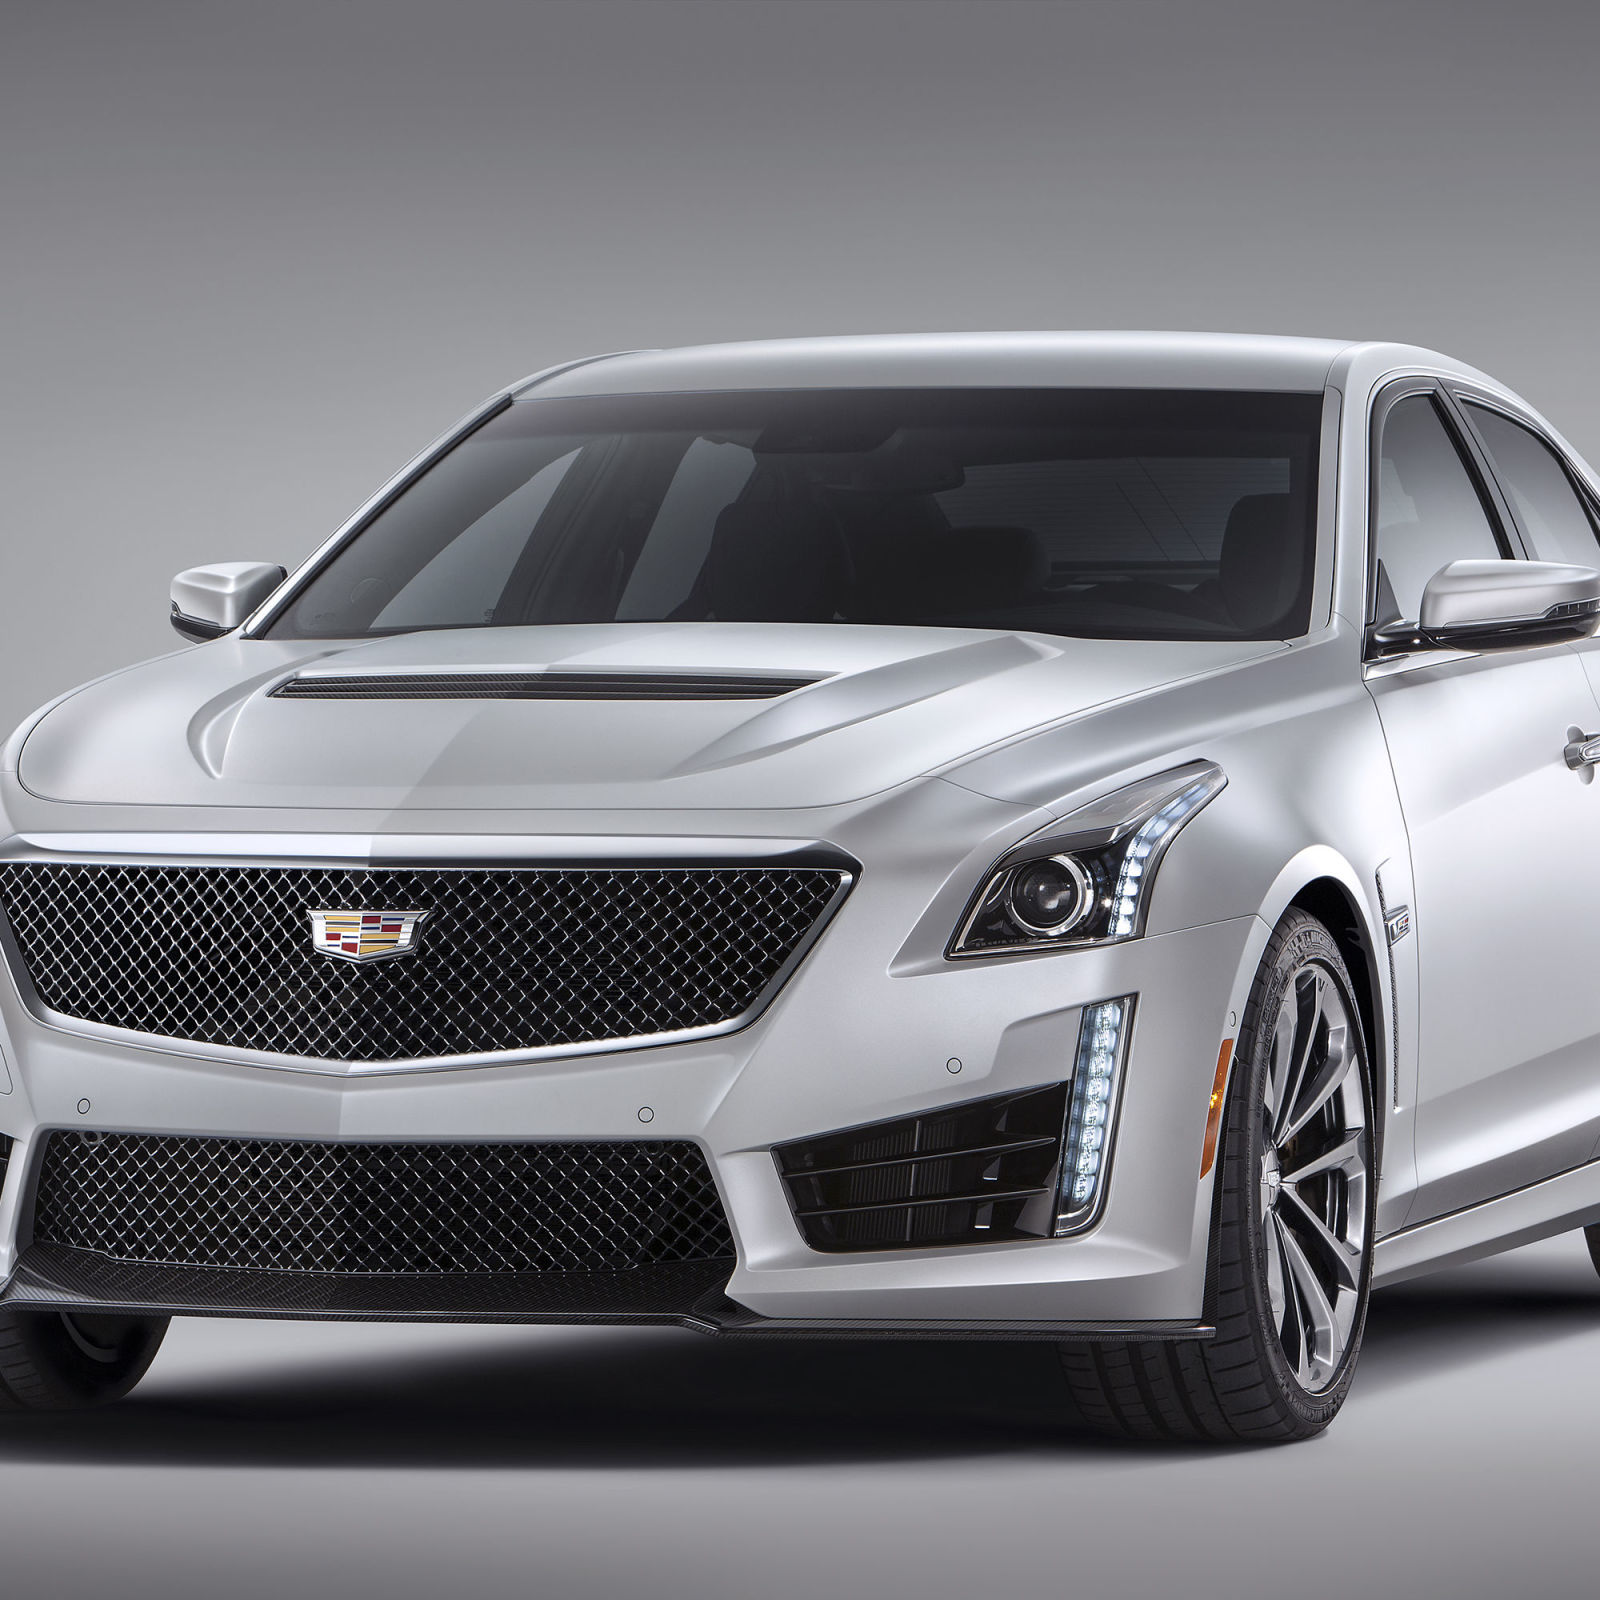 Cadillac Cts V Wagon For Sale: Meet The 640 Hp 2016 Cadillac CTS-V